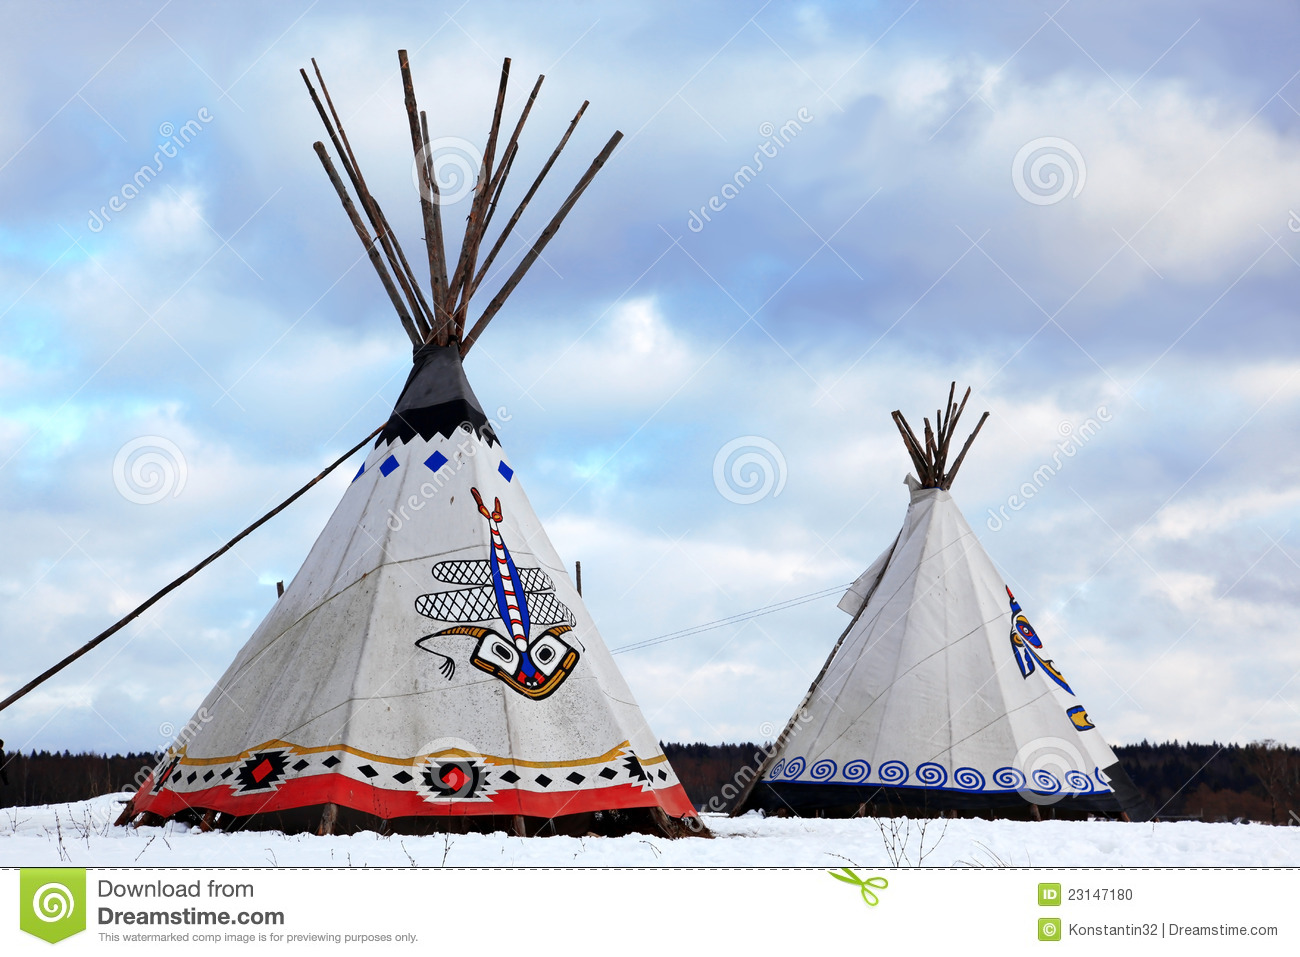 Did the Native Americans live in teepees - answerscom